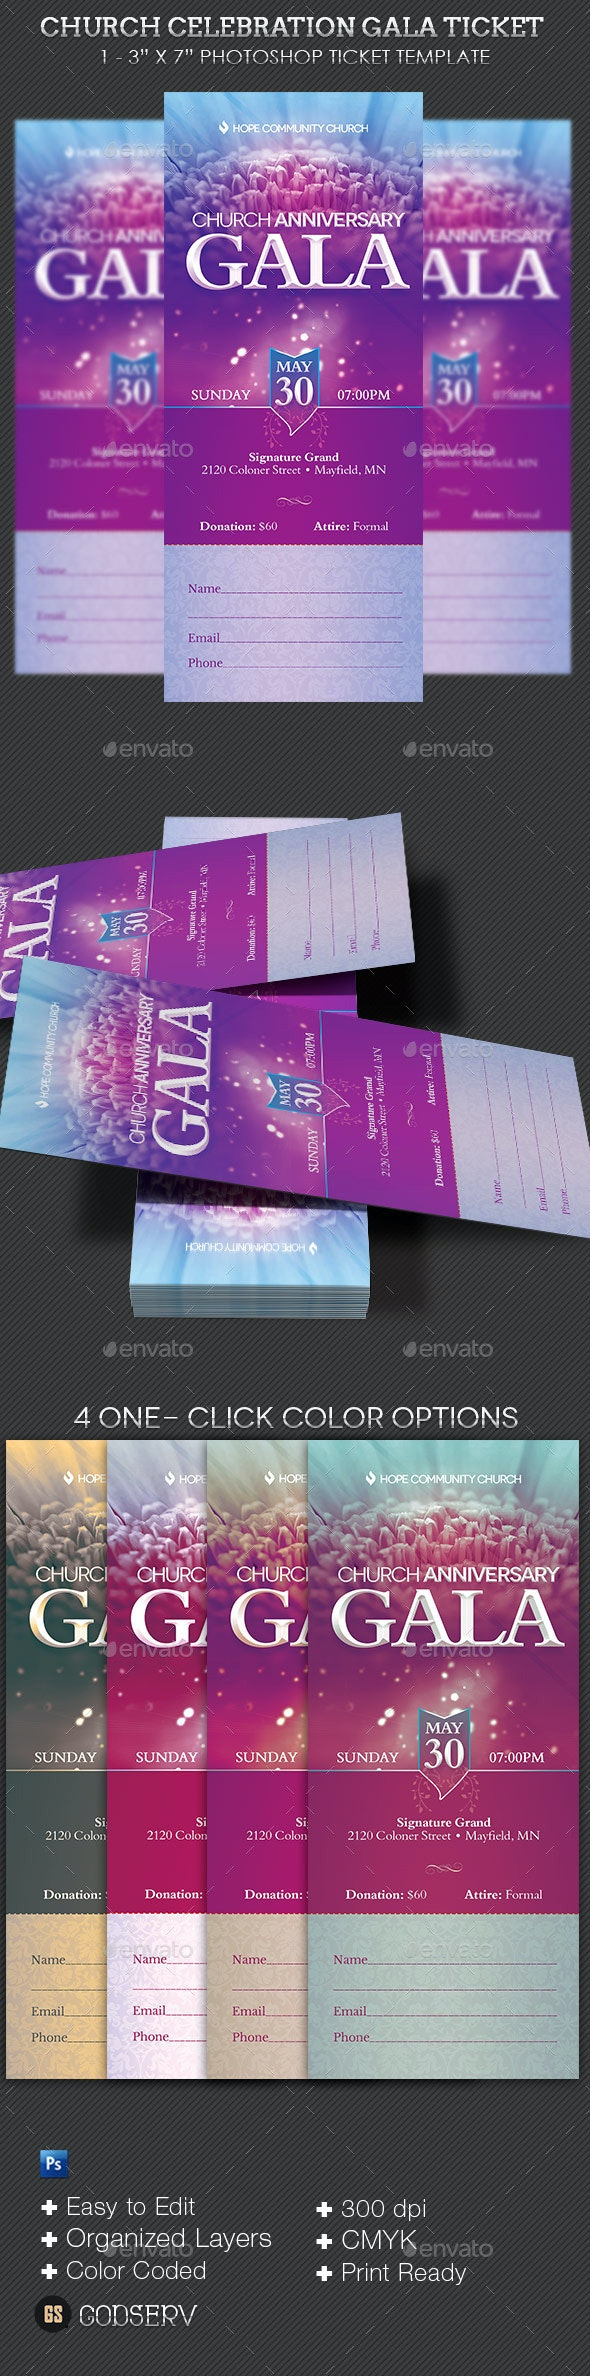 Church Celebration Gala Ticket Template - Miscellaneous Print Templates